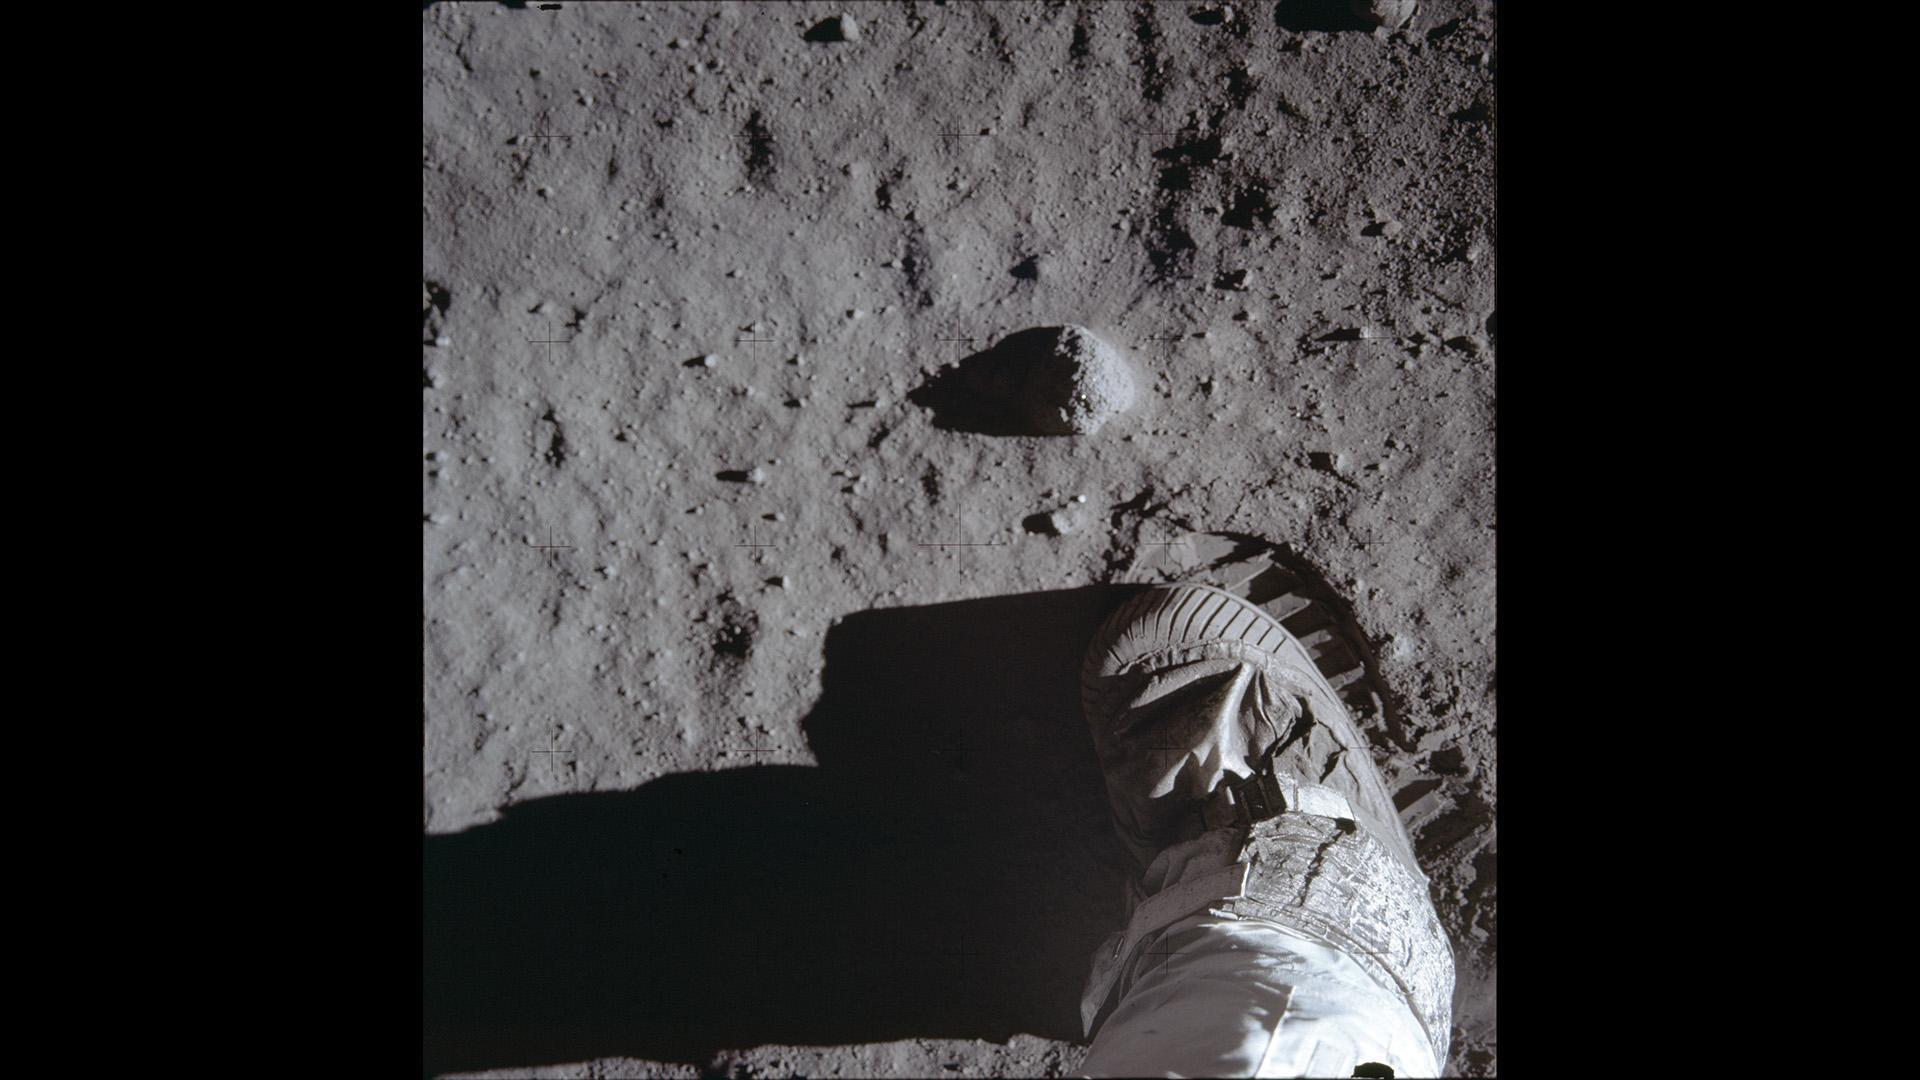 First footprints of humans on the Moon